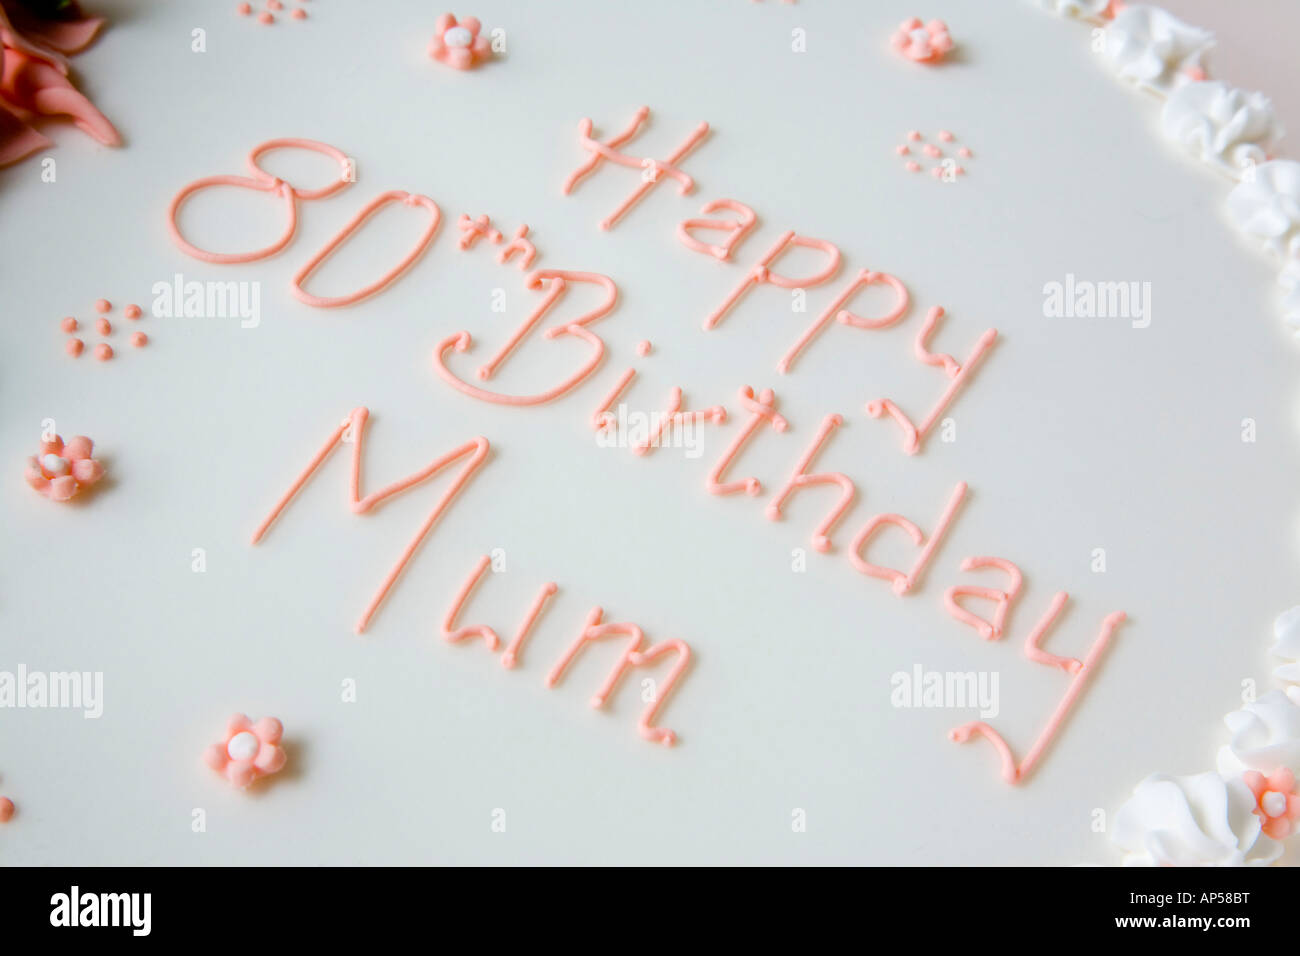 Happy 80th Birthday Mum Cake Decorated With Writing In Pink Piped Icing On White Close Up Diagonal From Above